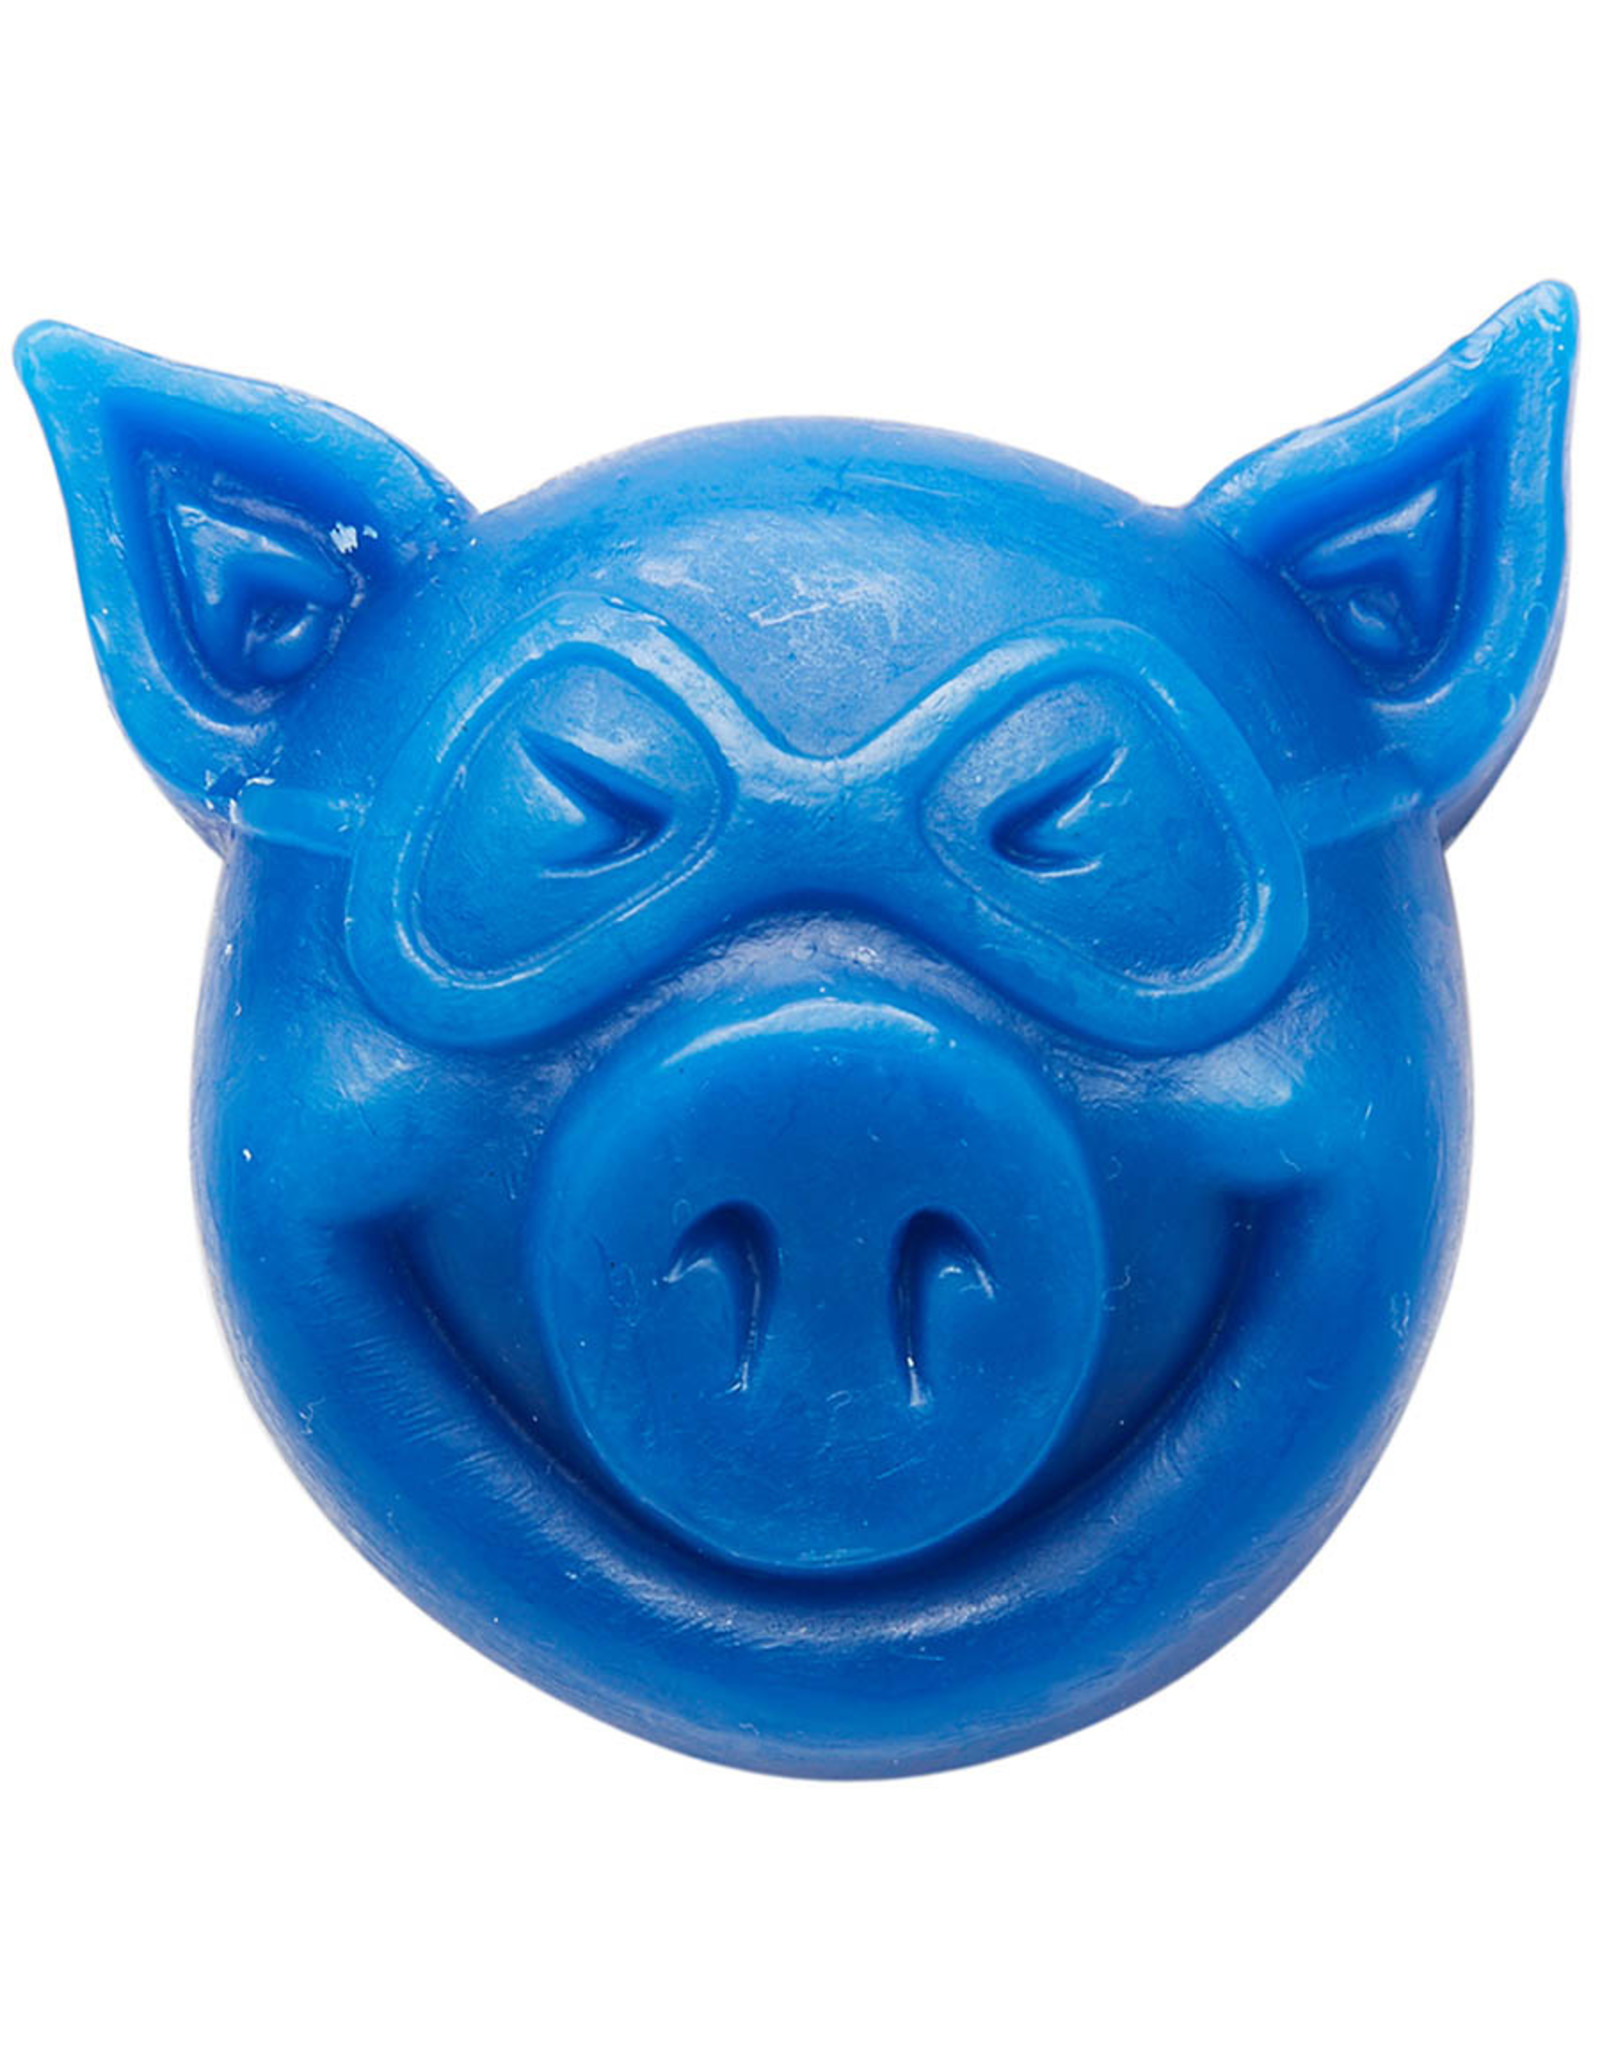 Pig Pig Wax Pig Head (Blue)